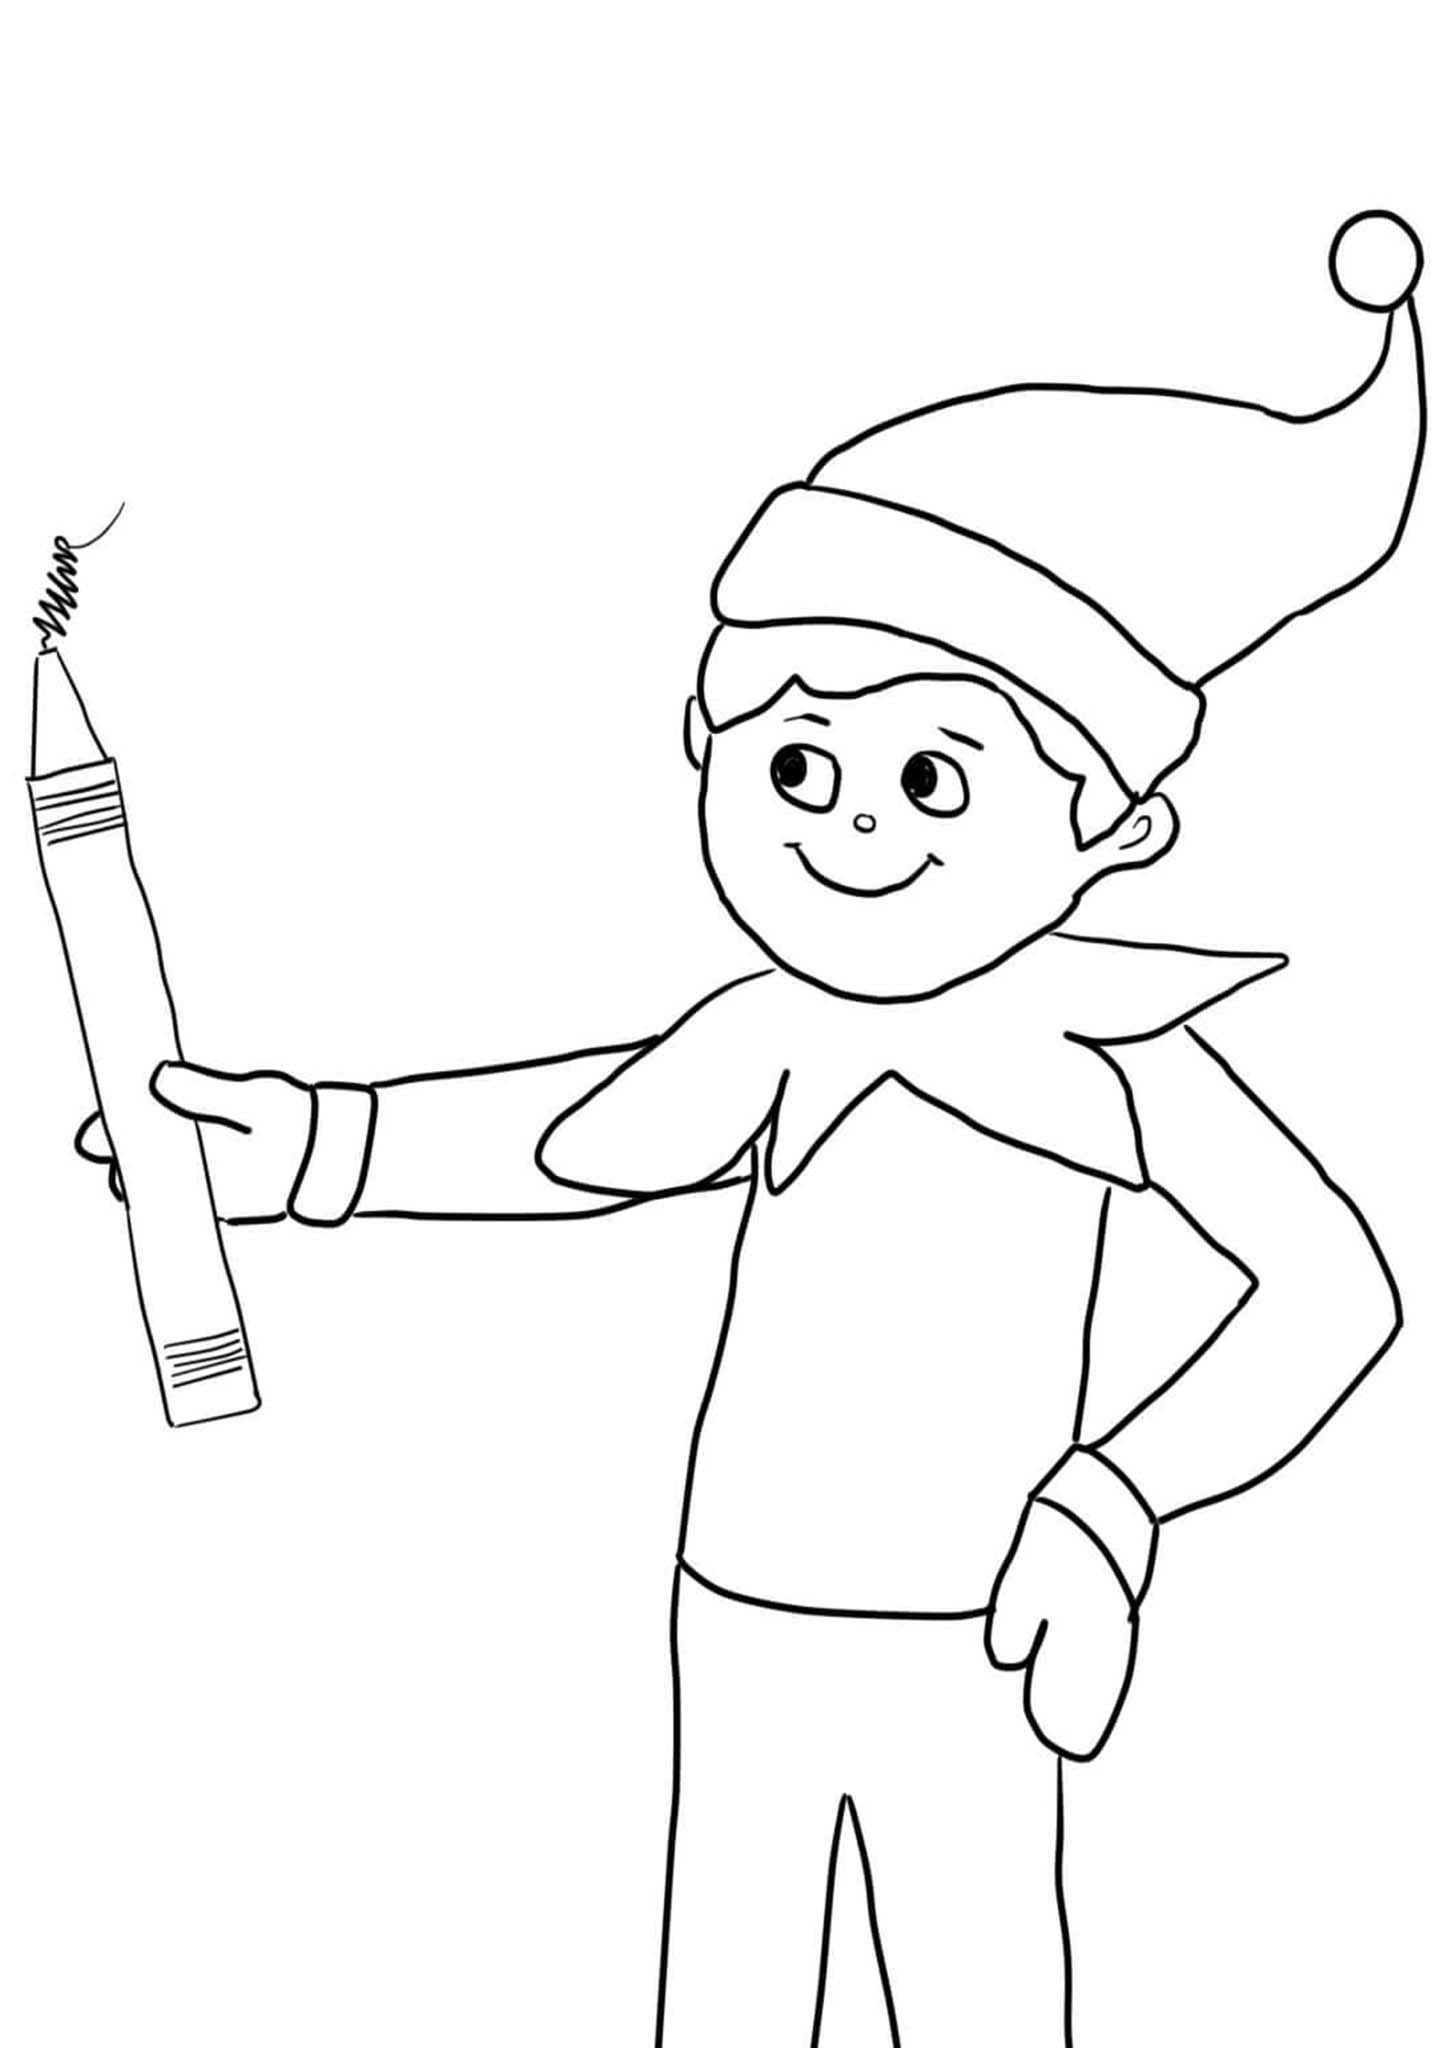 Free Printable Elf On The Shelf Coloring Pages Coloring Pages Valentines Day Coloring Page Christmas Coloring Pages